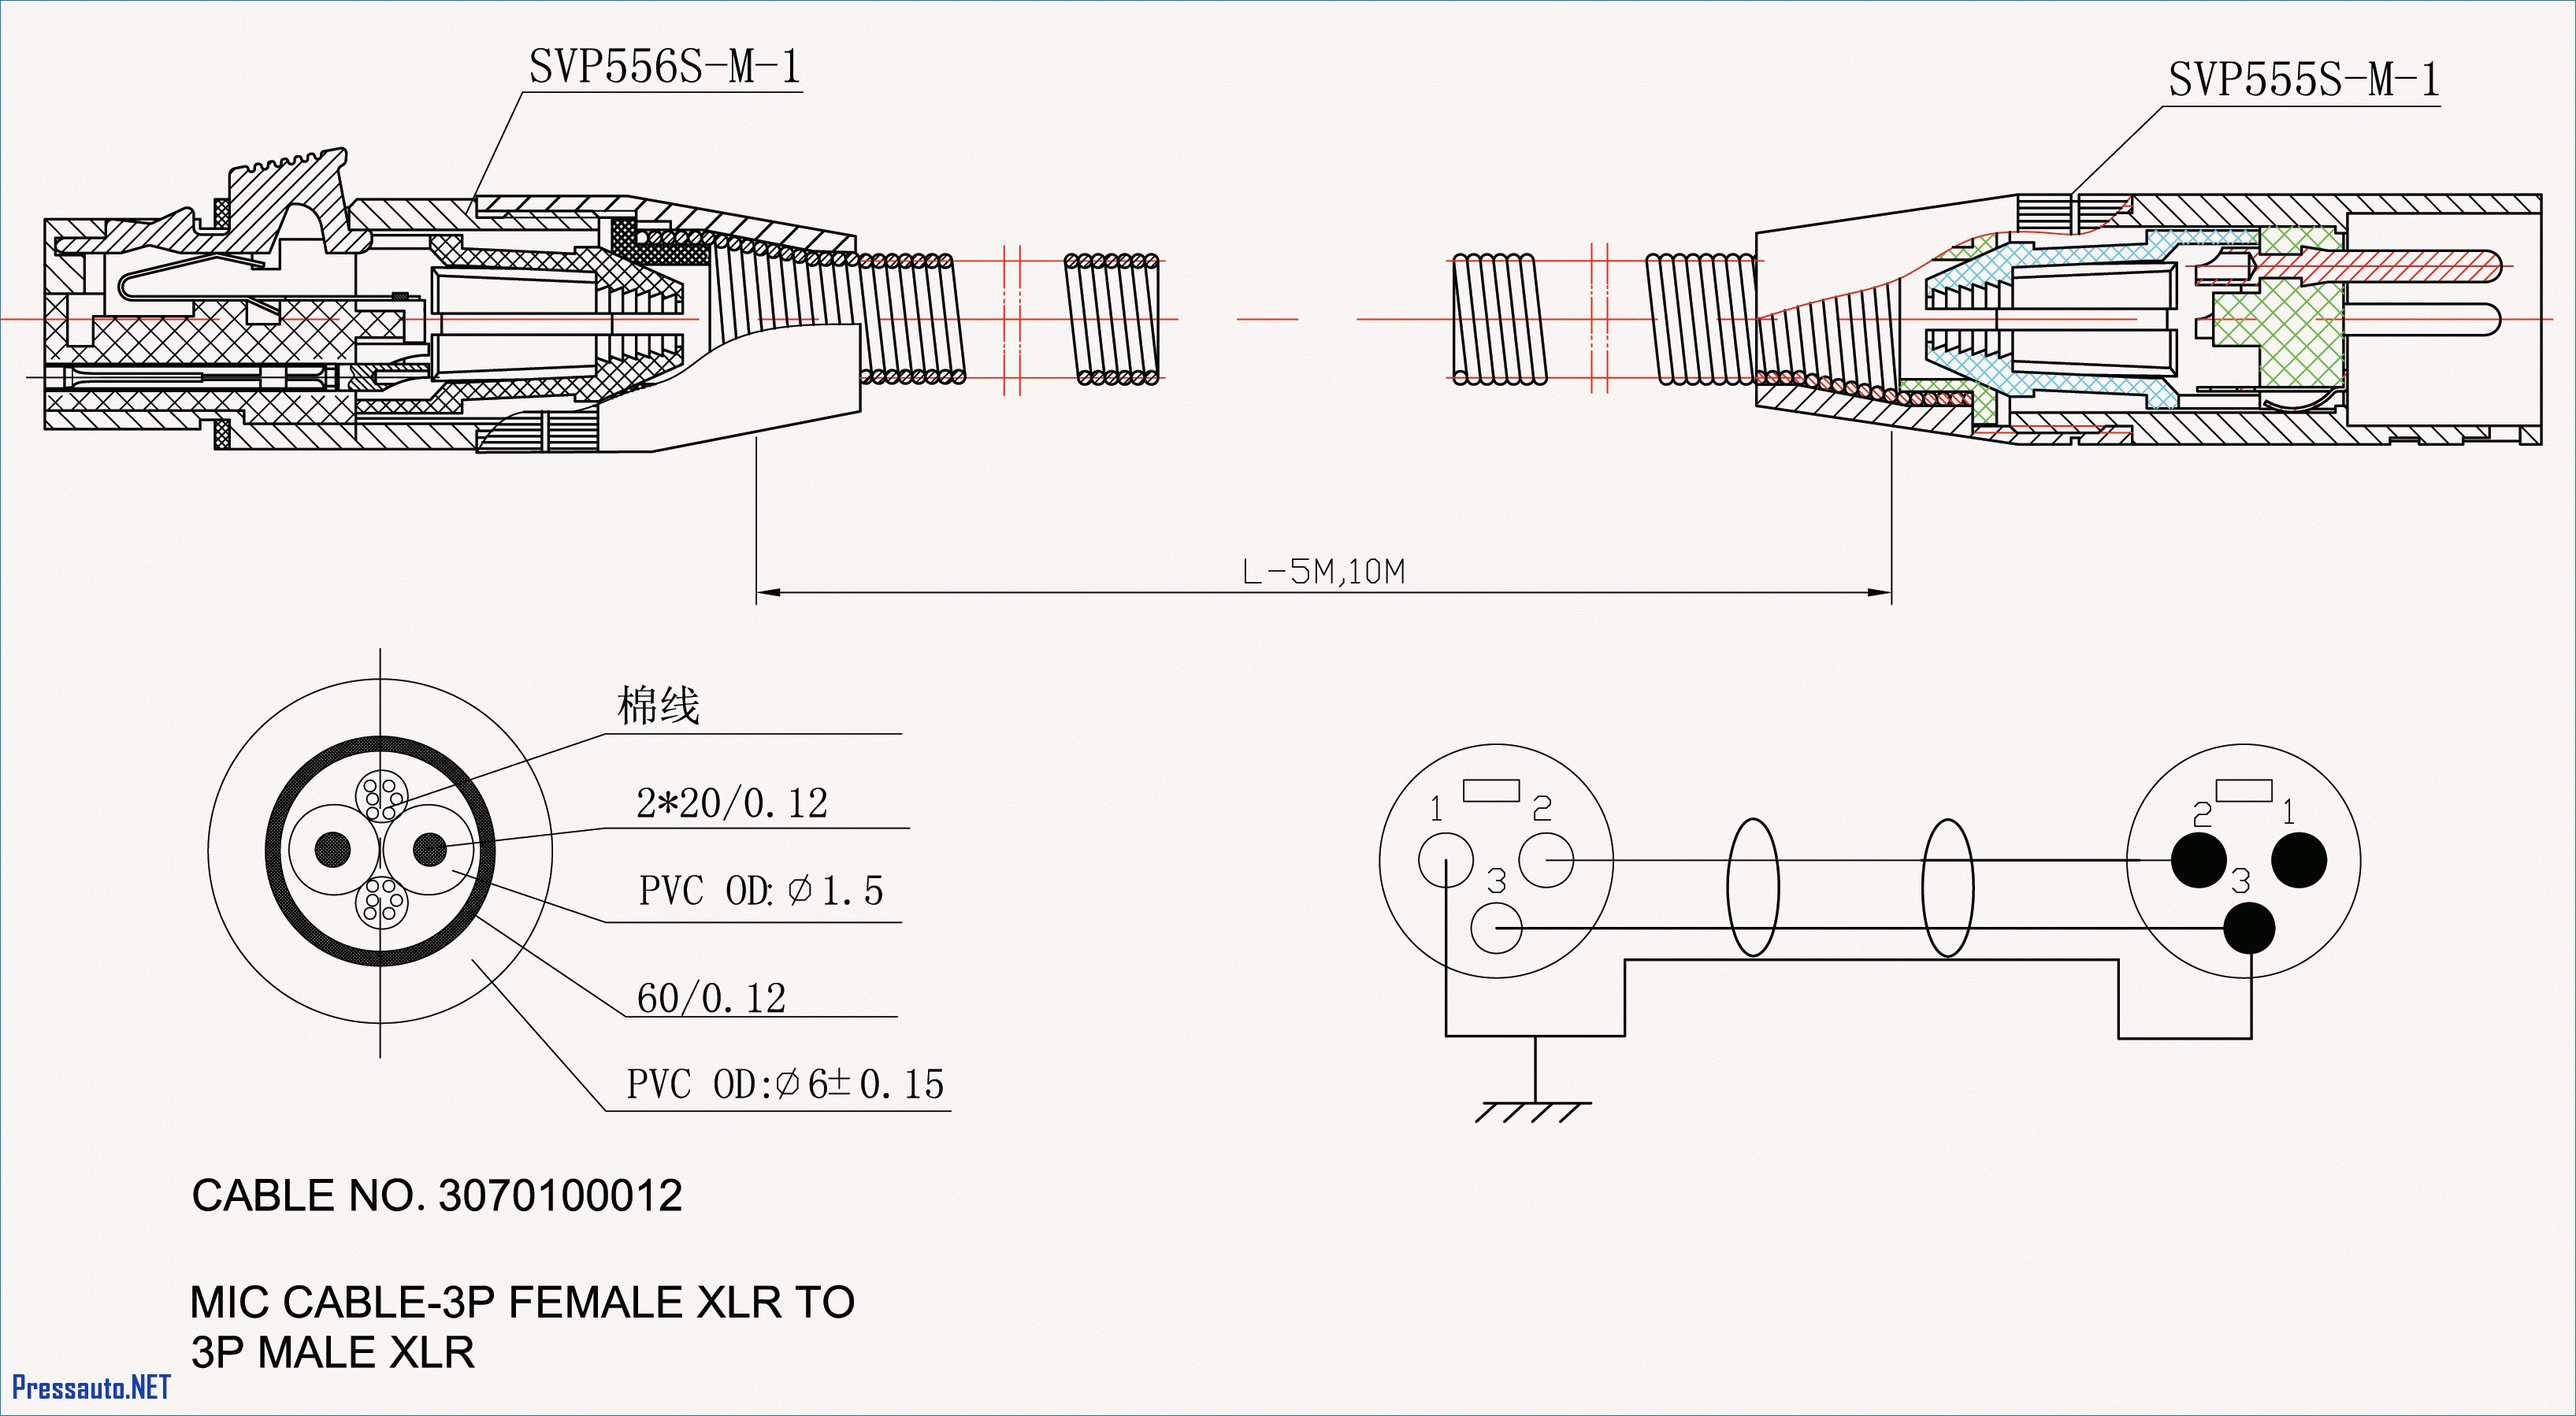 spx stone hydraulic pump wiring diagram Collection-data link connector wiring diagram Download 3 Wire Alternator Wiring Diagram Chevy Inspirationa Mic 3 3-s